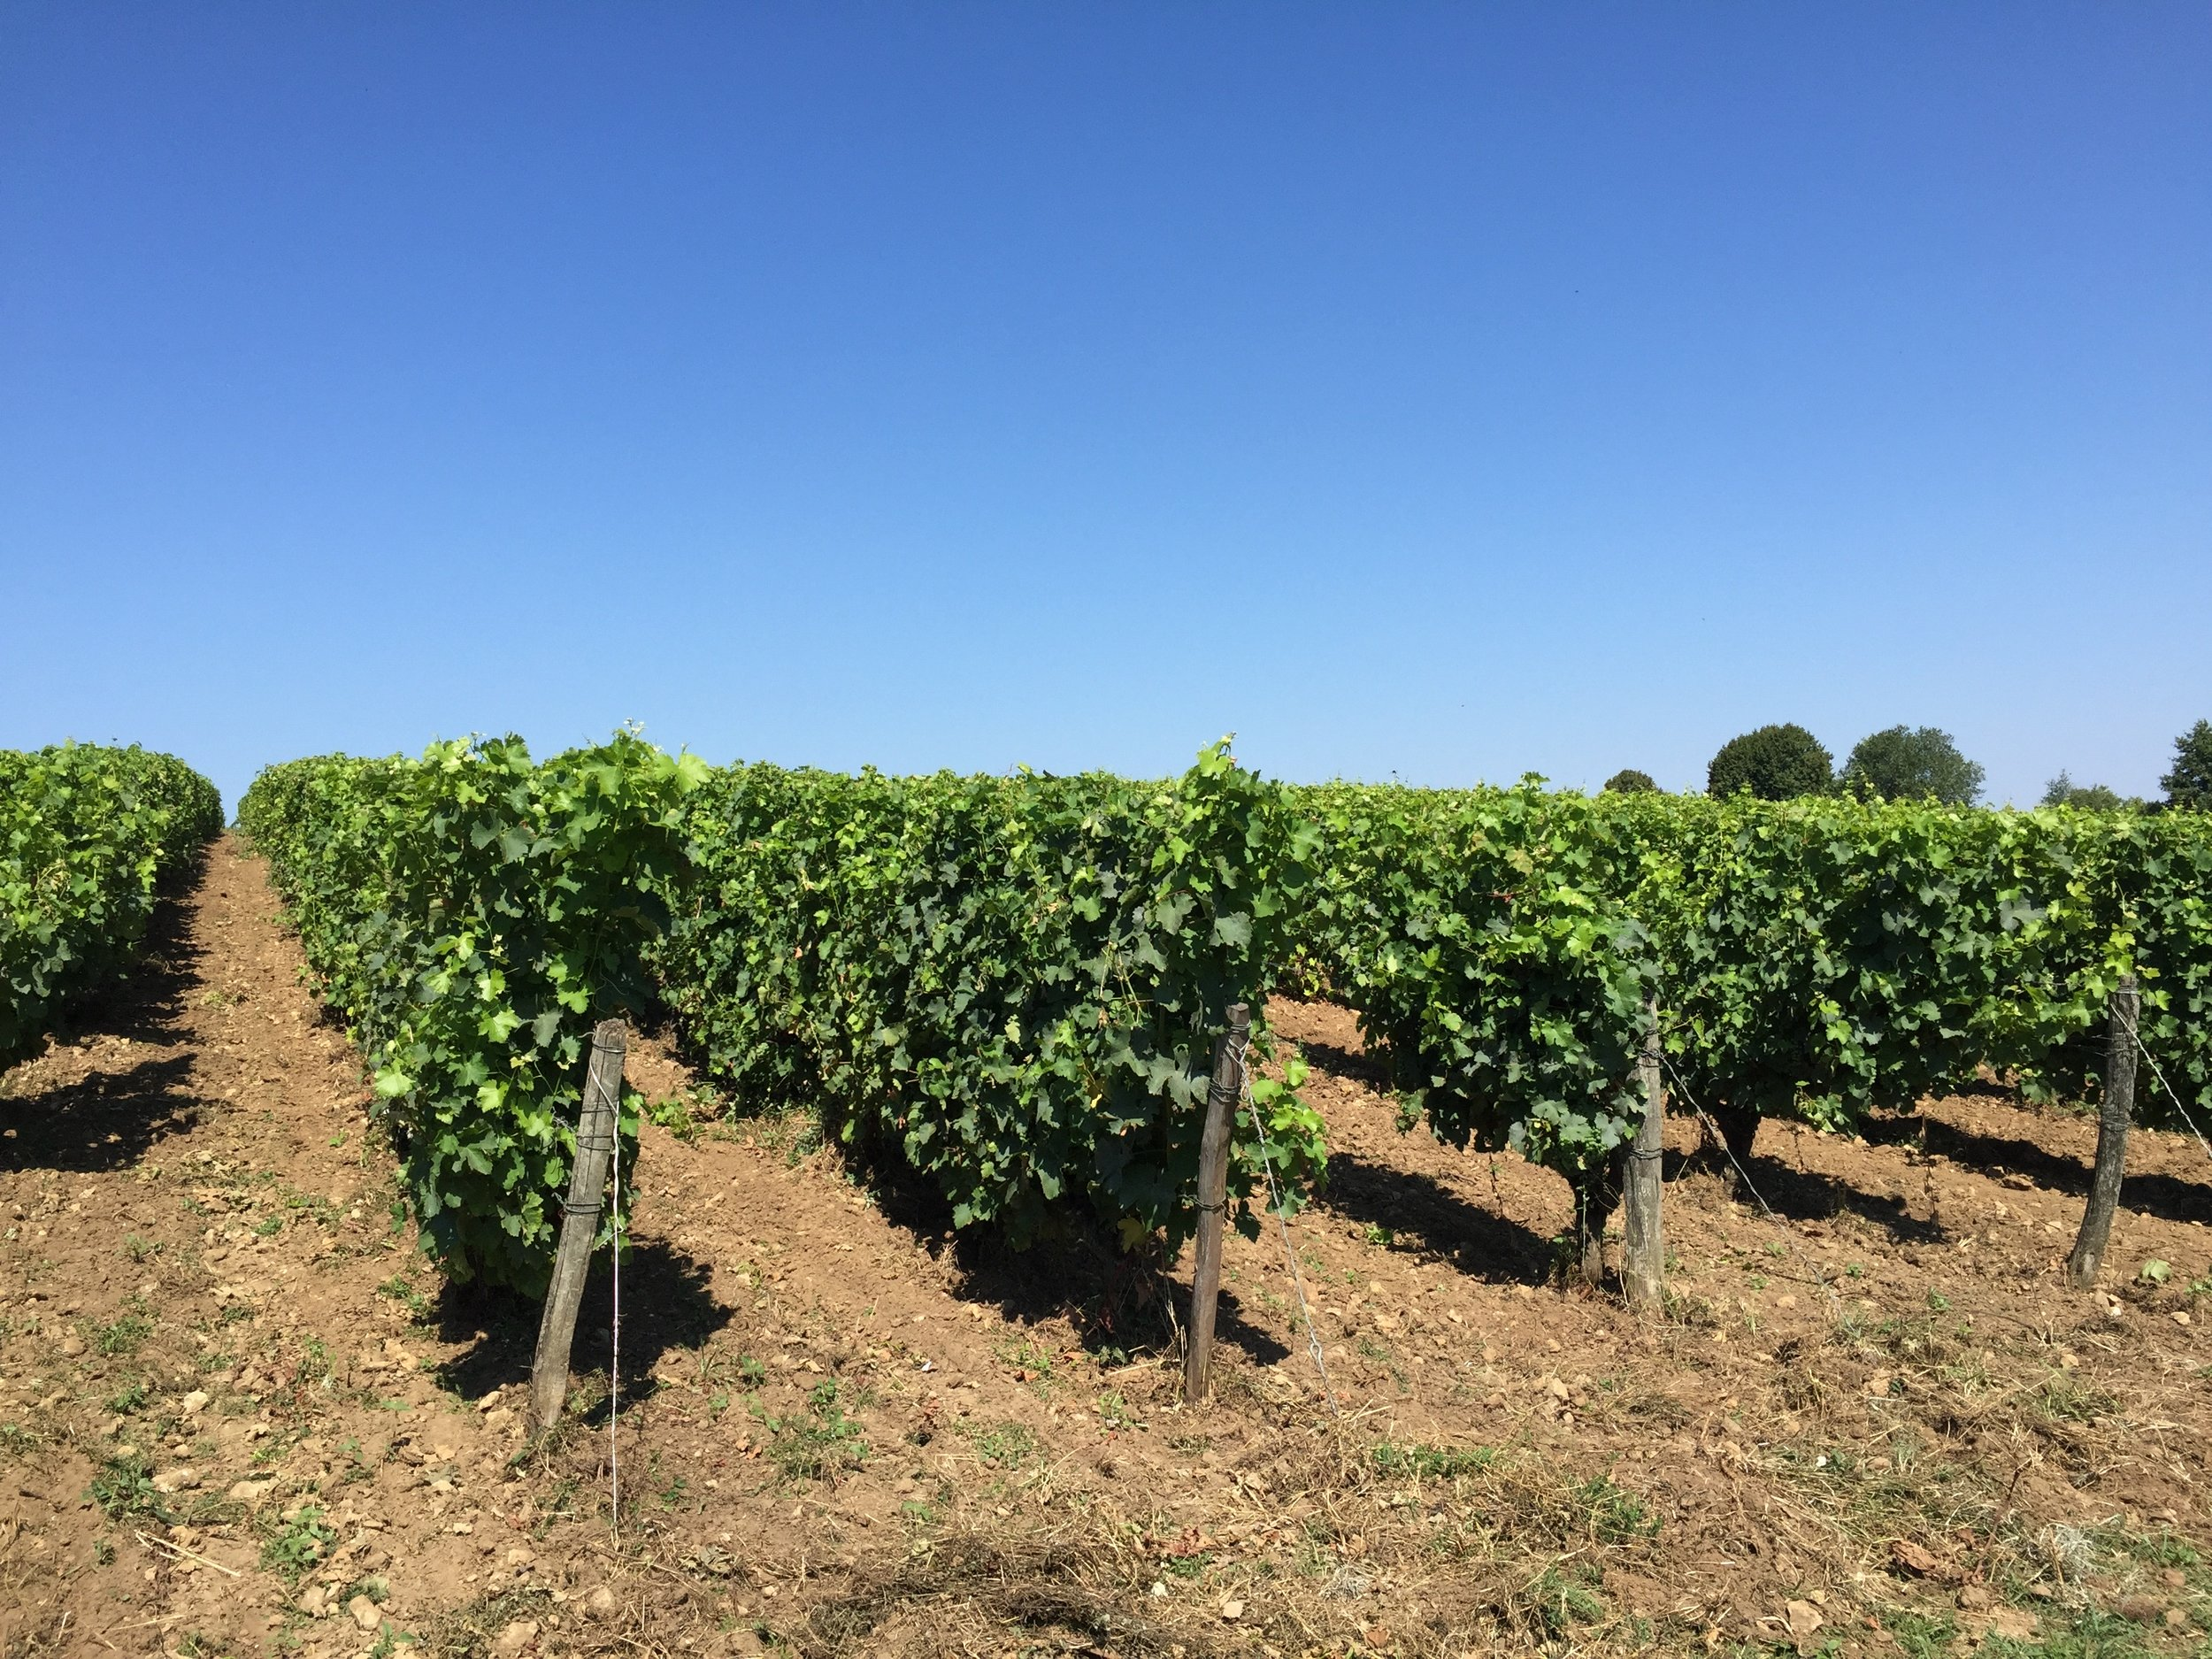 At Domaine de Clos Rousilly, some of the grape vines are in a field above the limestone cellar where the wine is processed